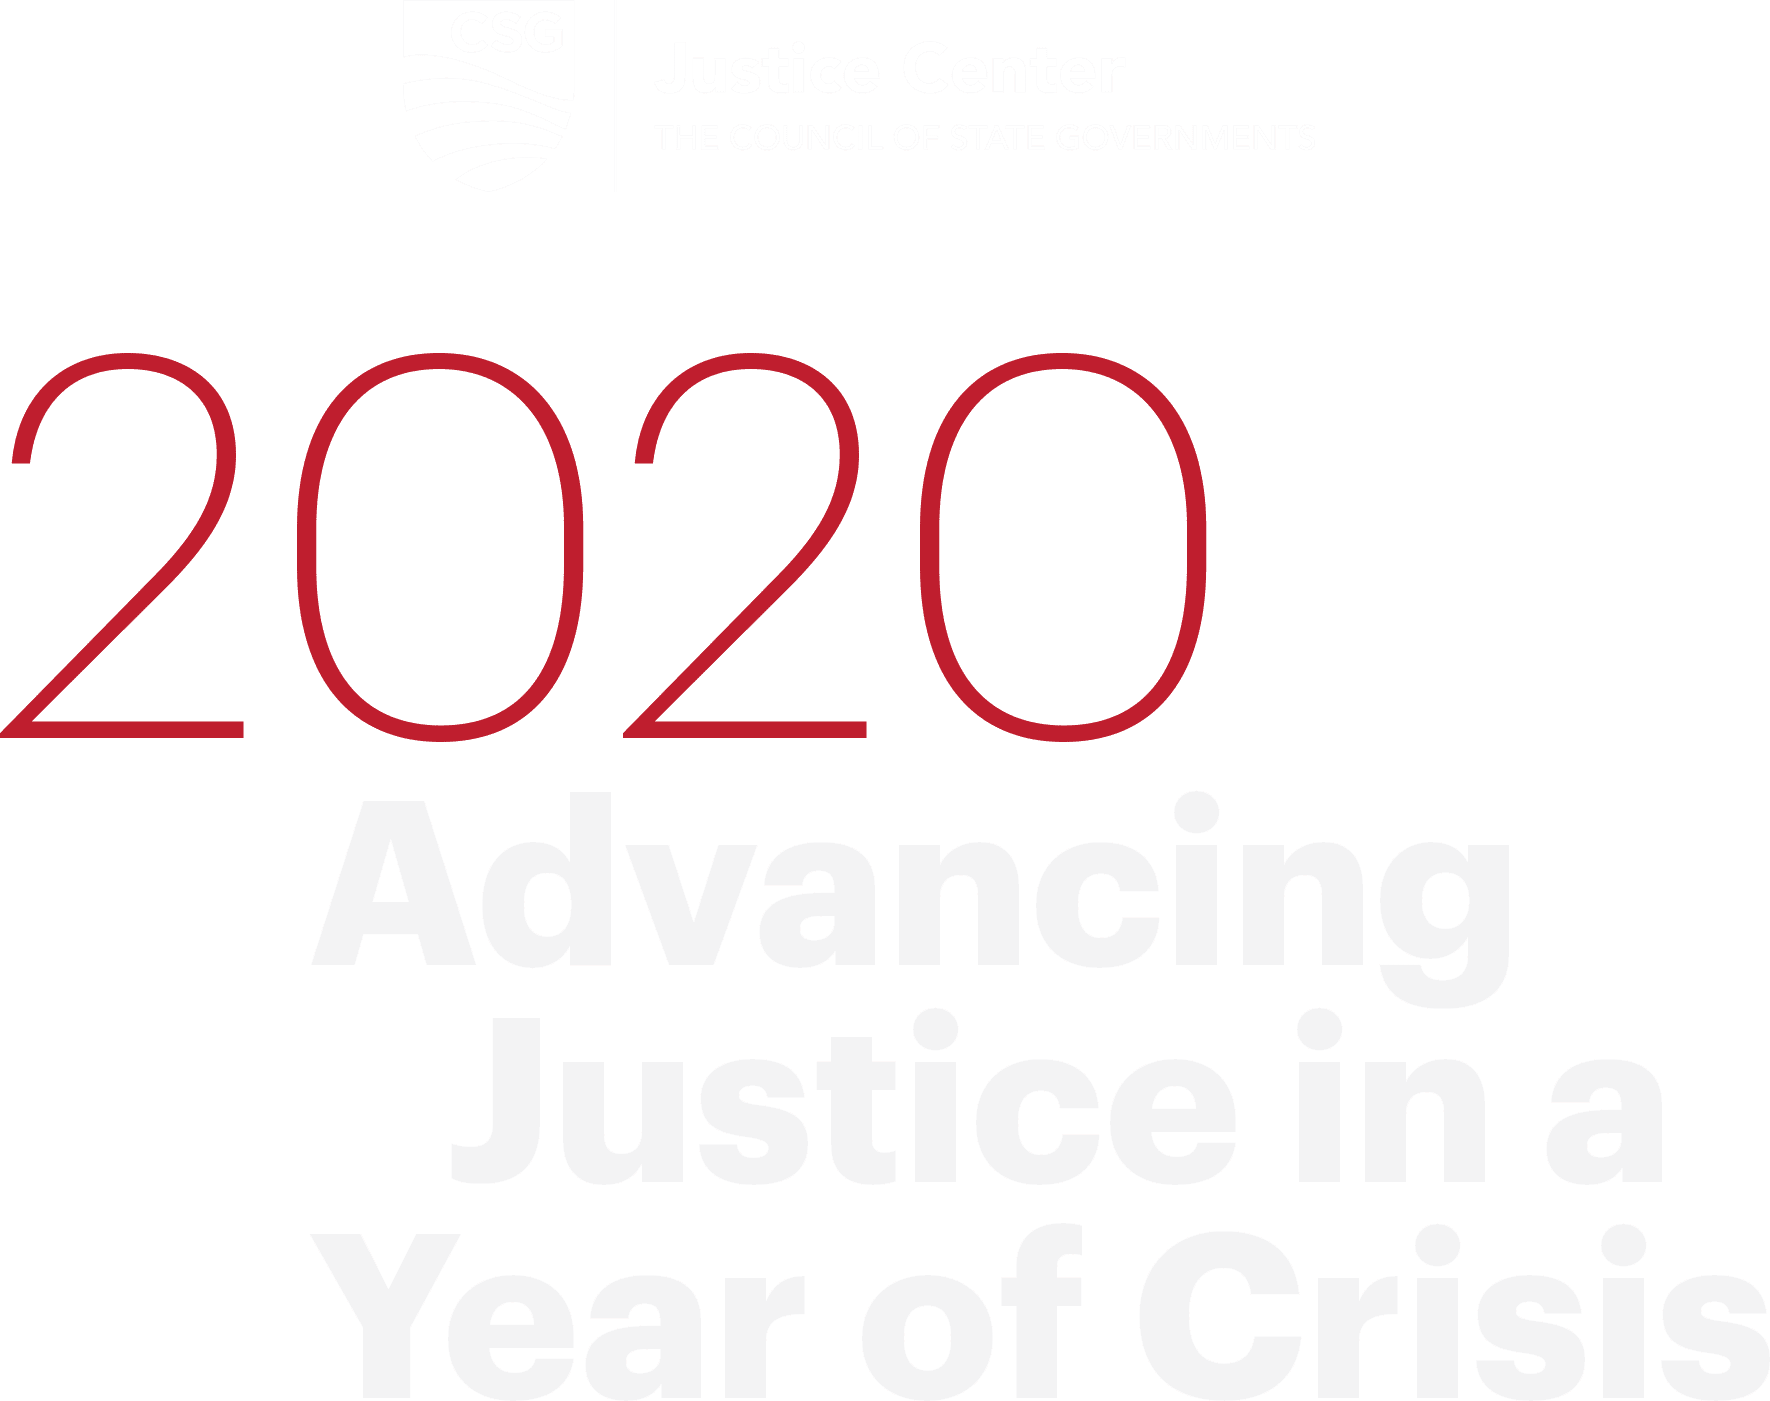 2020: Advancing Justice in a Year of Crisis